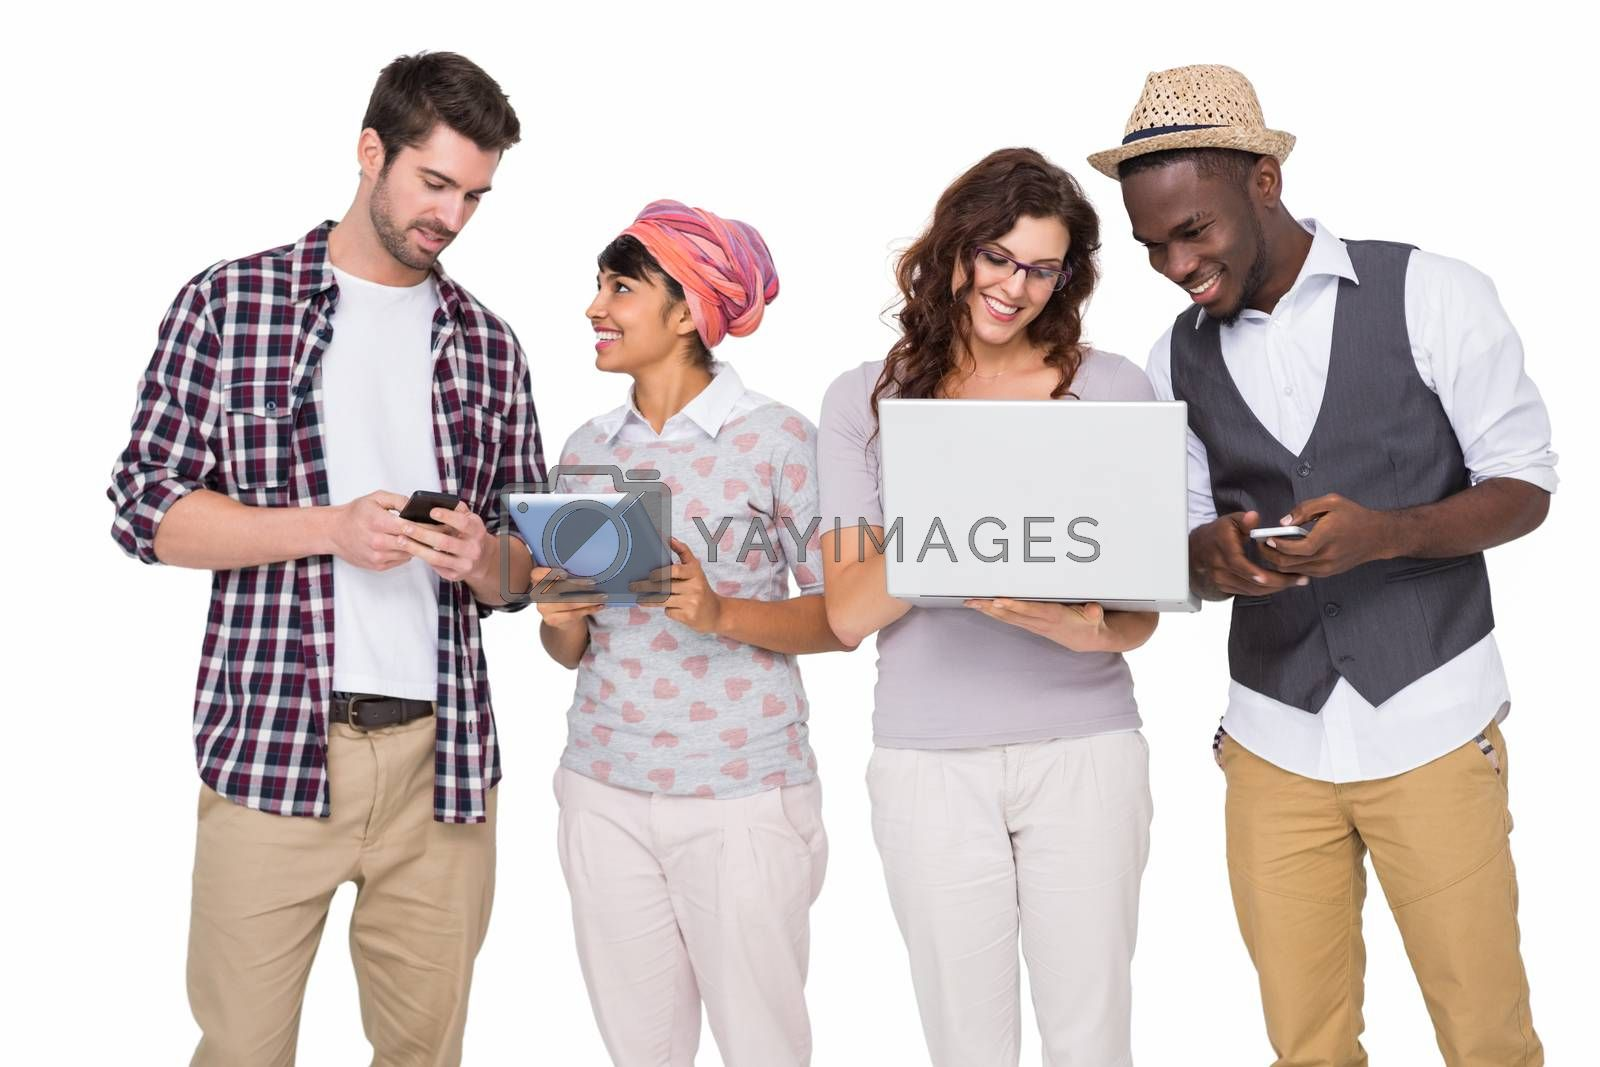 Smiling coworkers with technology interacting together on white background